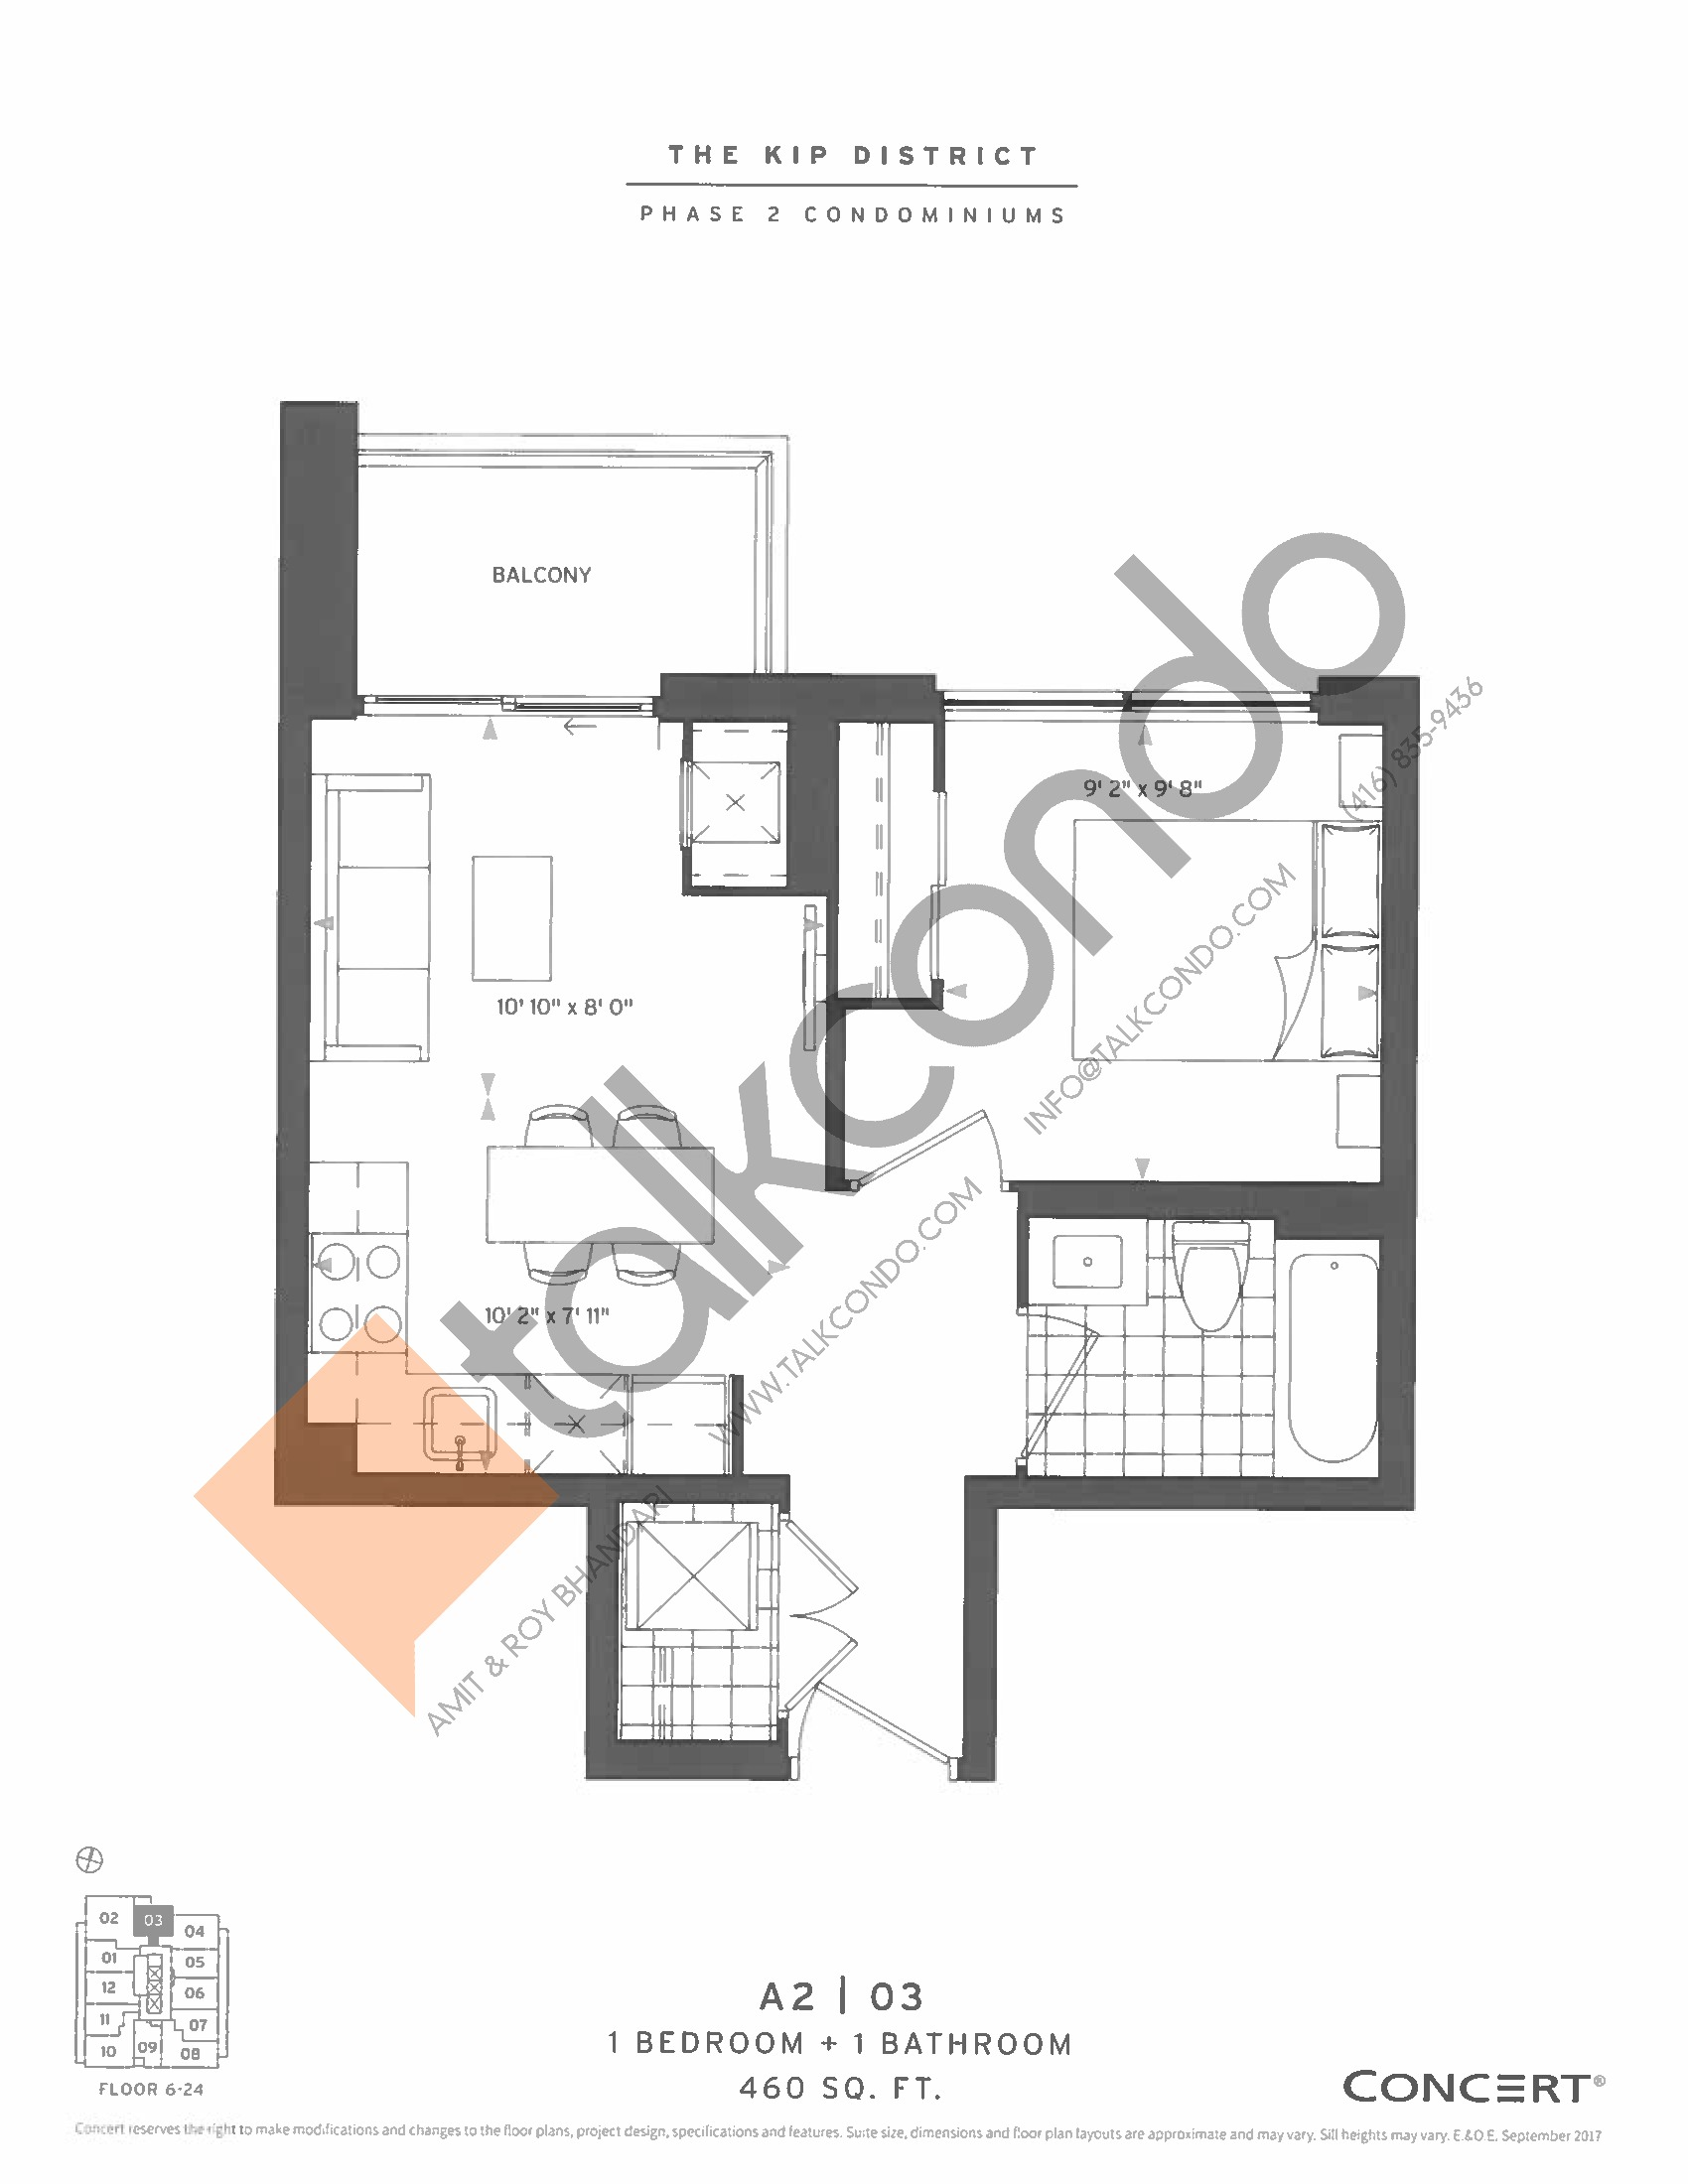 A2   03 Floor Plan at The Kip District Phase 2 Condos - 460 sq.ft